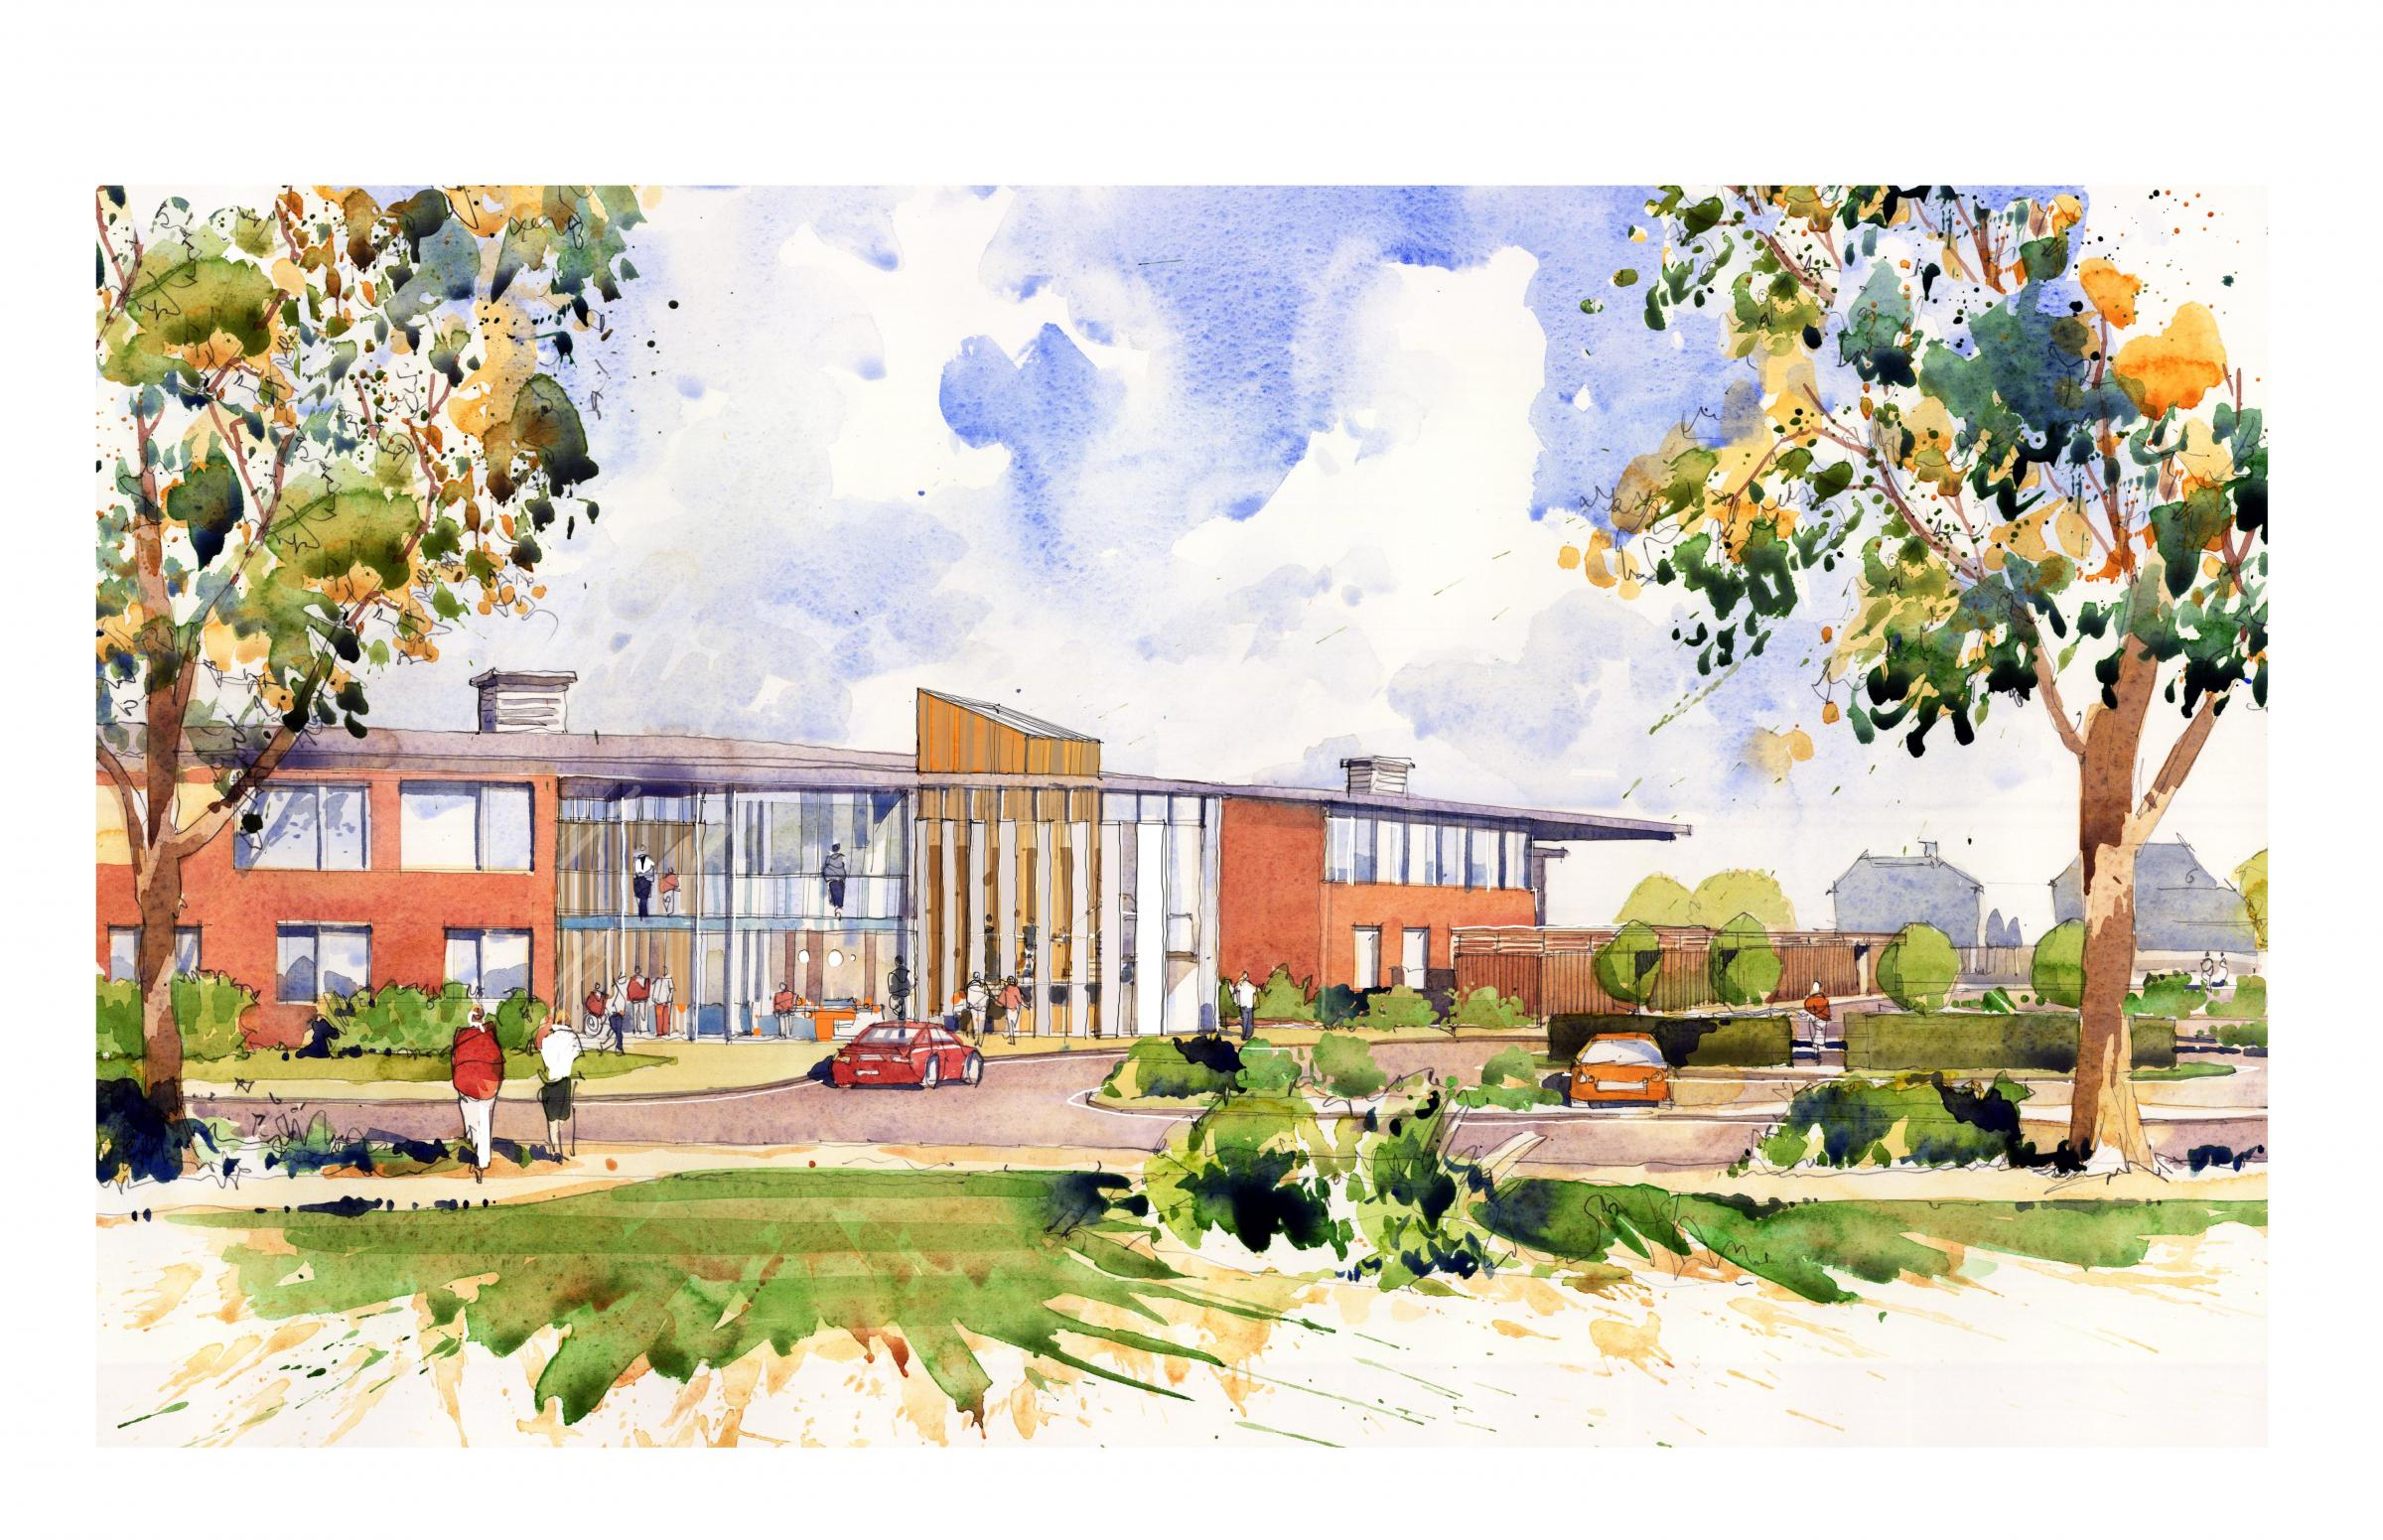 An artist's impression of the new hospice